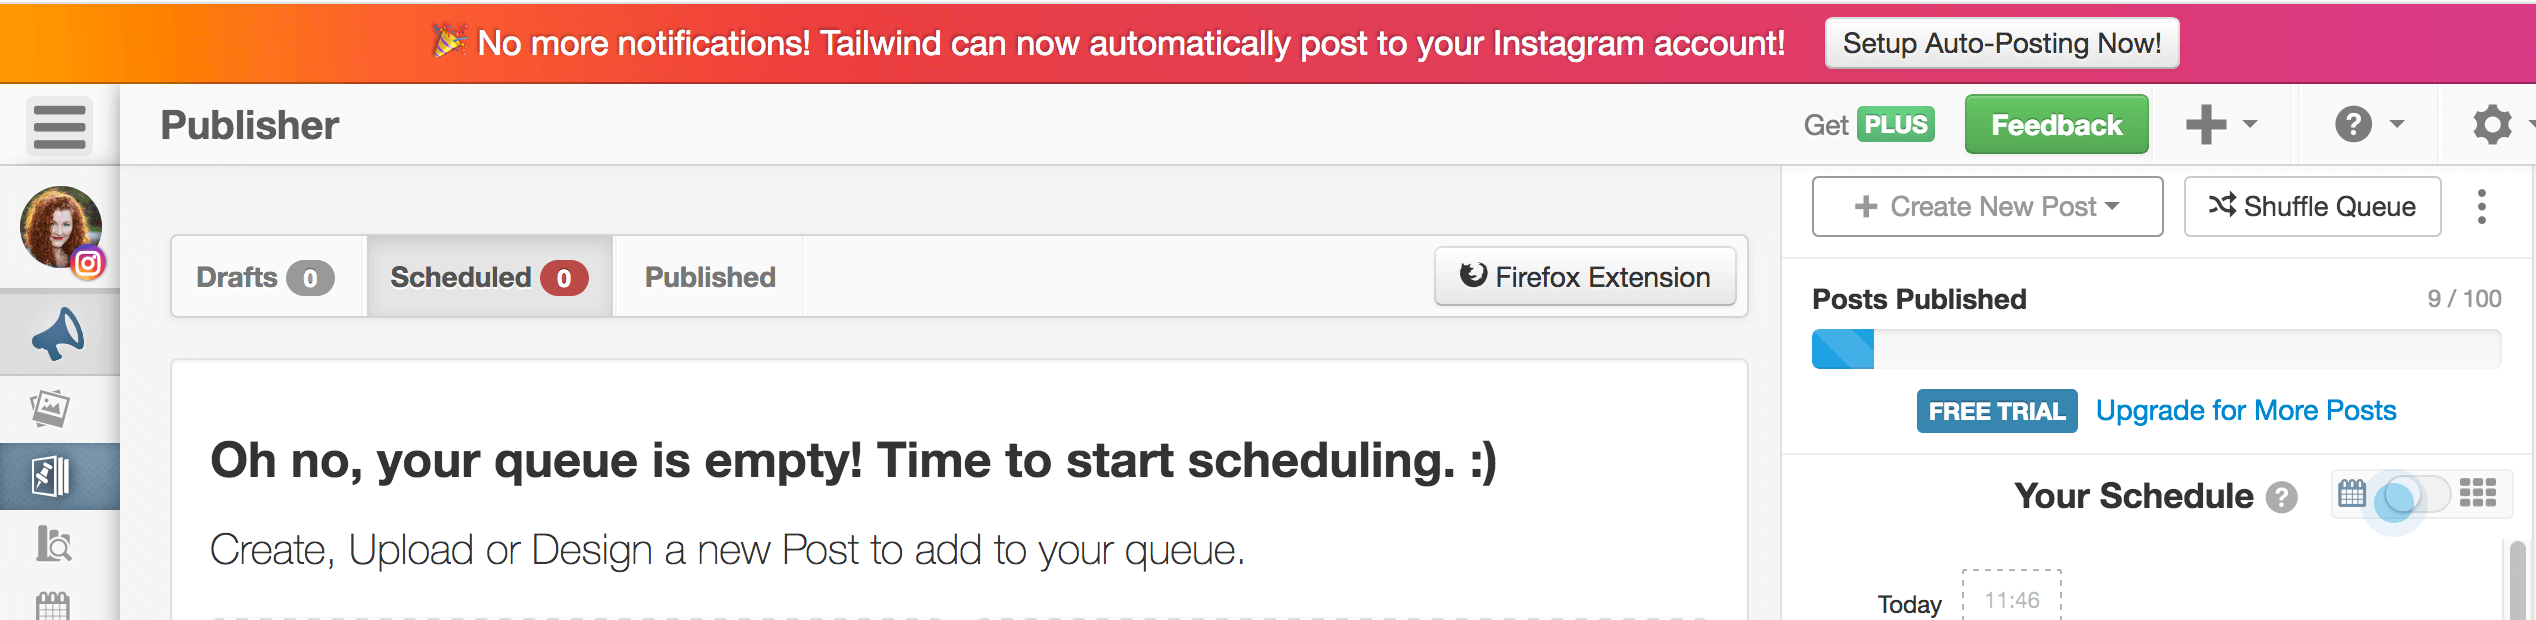 Banner Showing Set up Auto Posting to Instagram with Tailwind Now